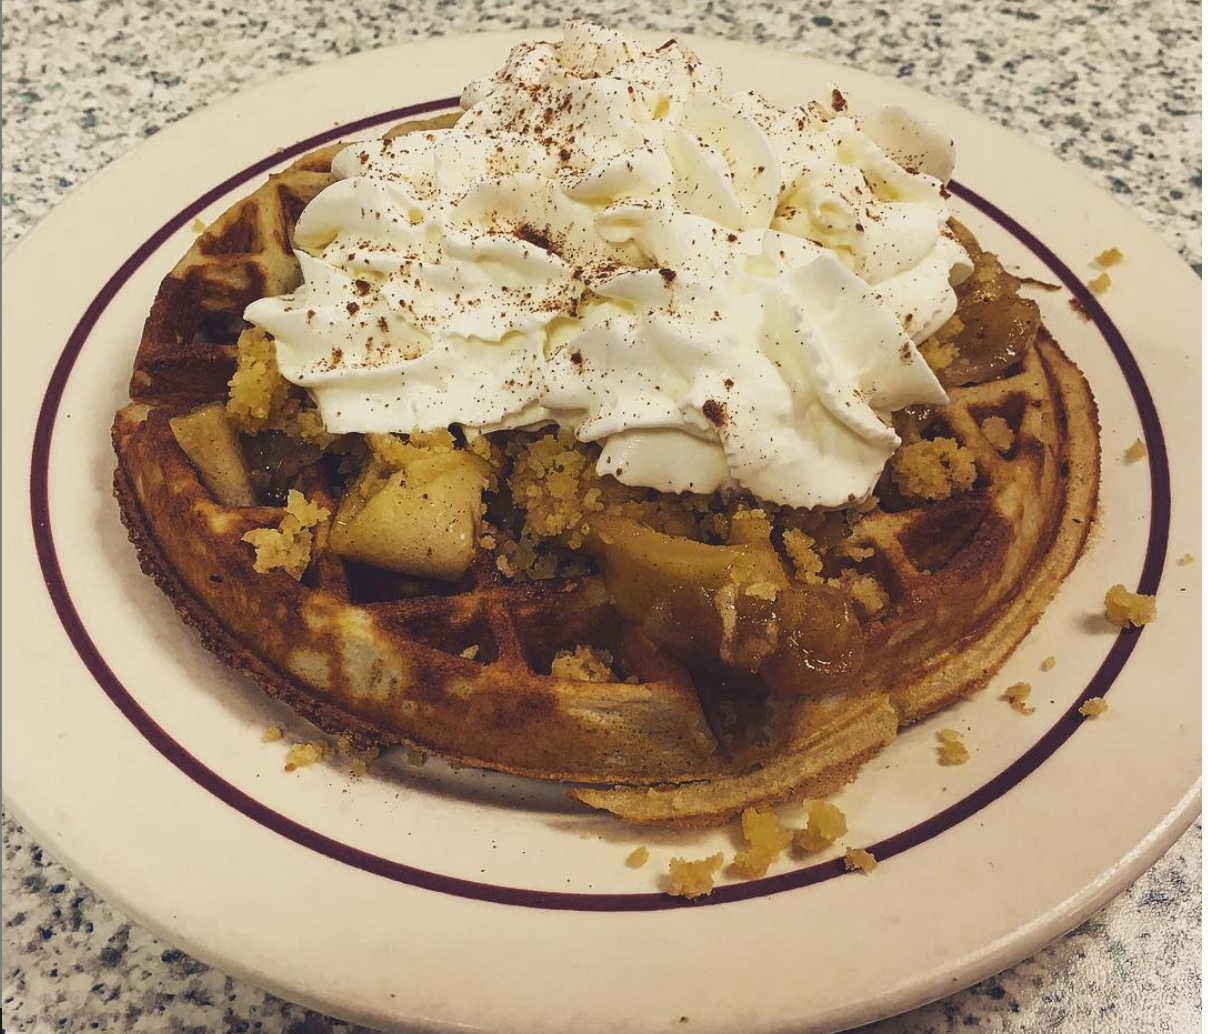 Apple Crisp Waffle - Waffle with sugar crumble, apple compote, whipped cream and a cinnamon sugar dusting